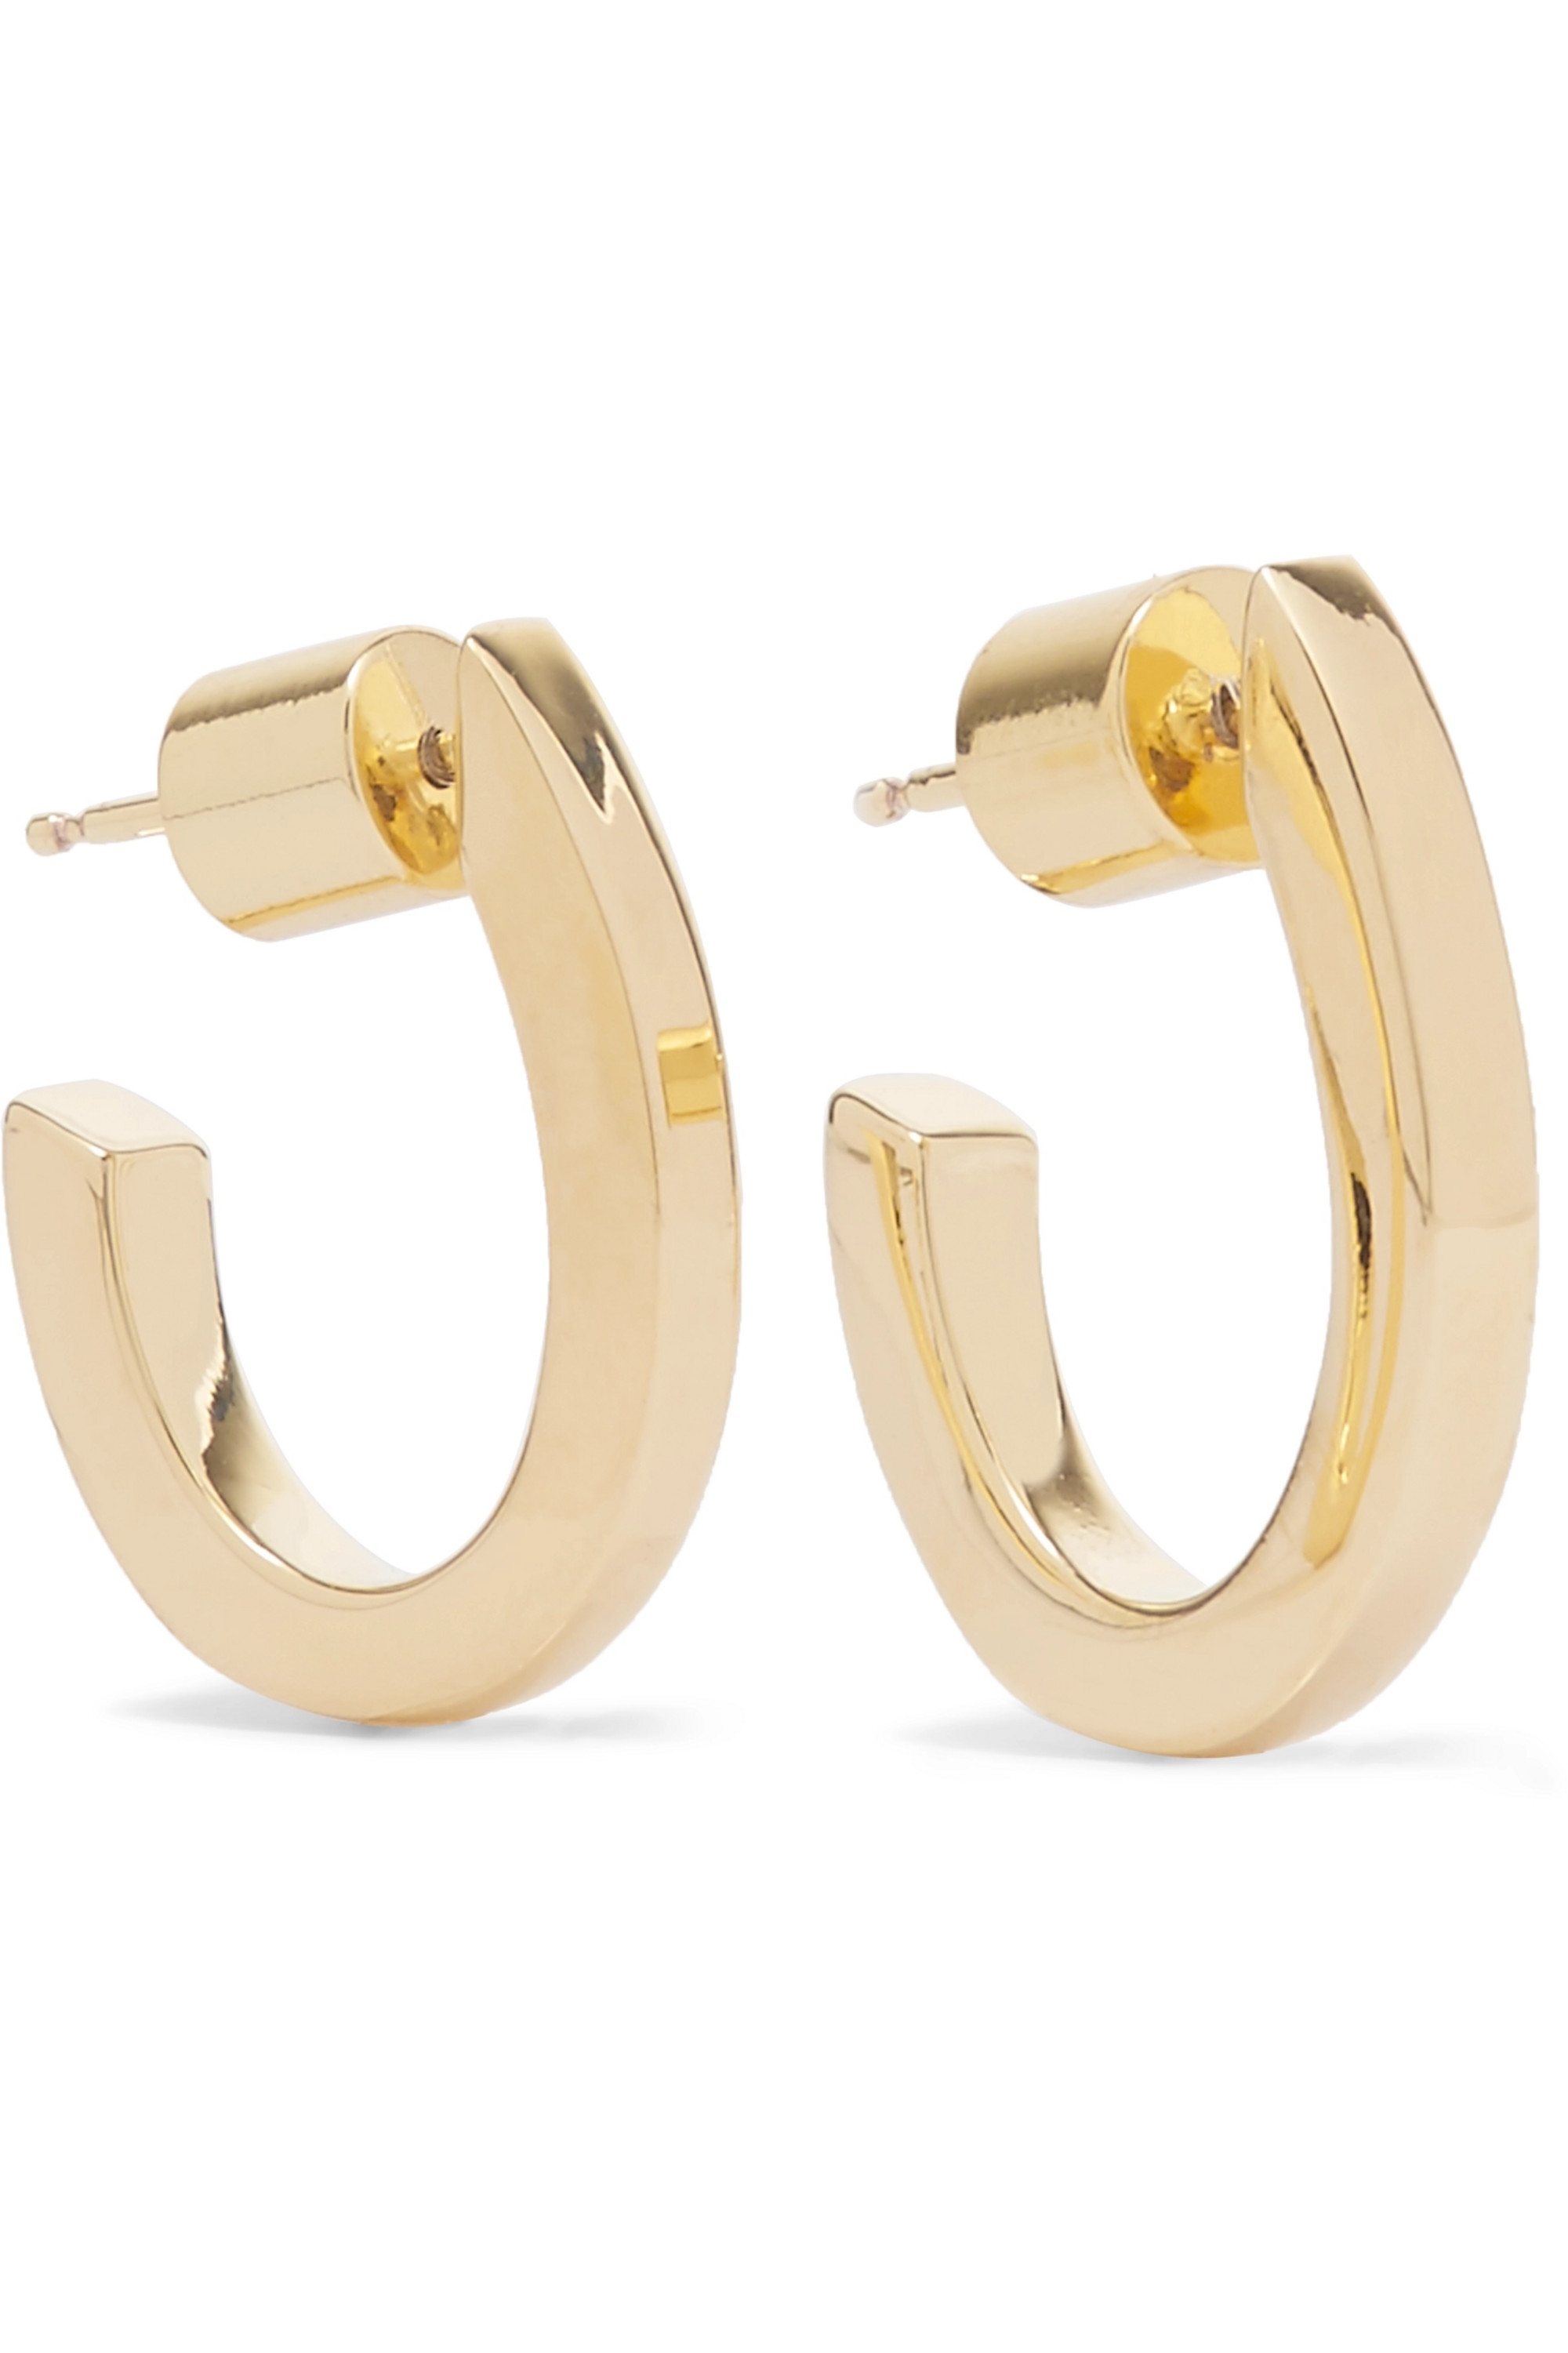 Jennifer Fisher Square Huggies gold-plated hoop earrings